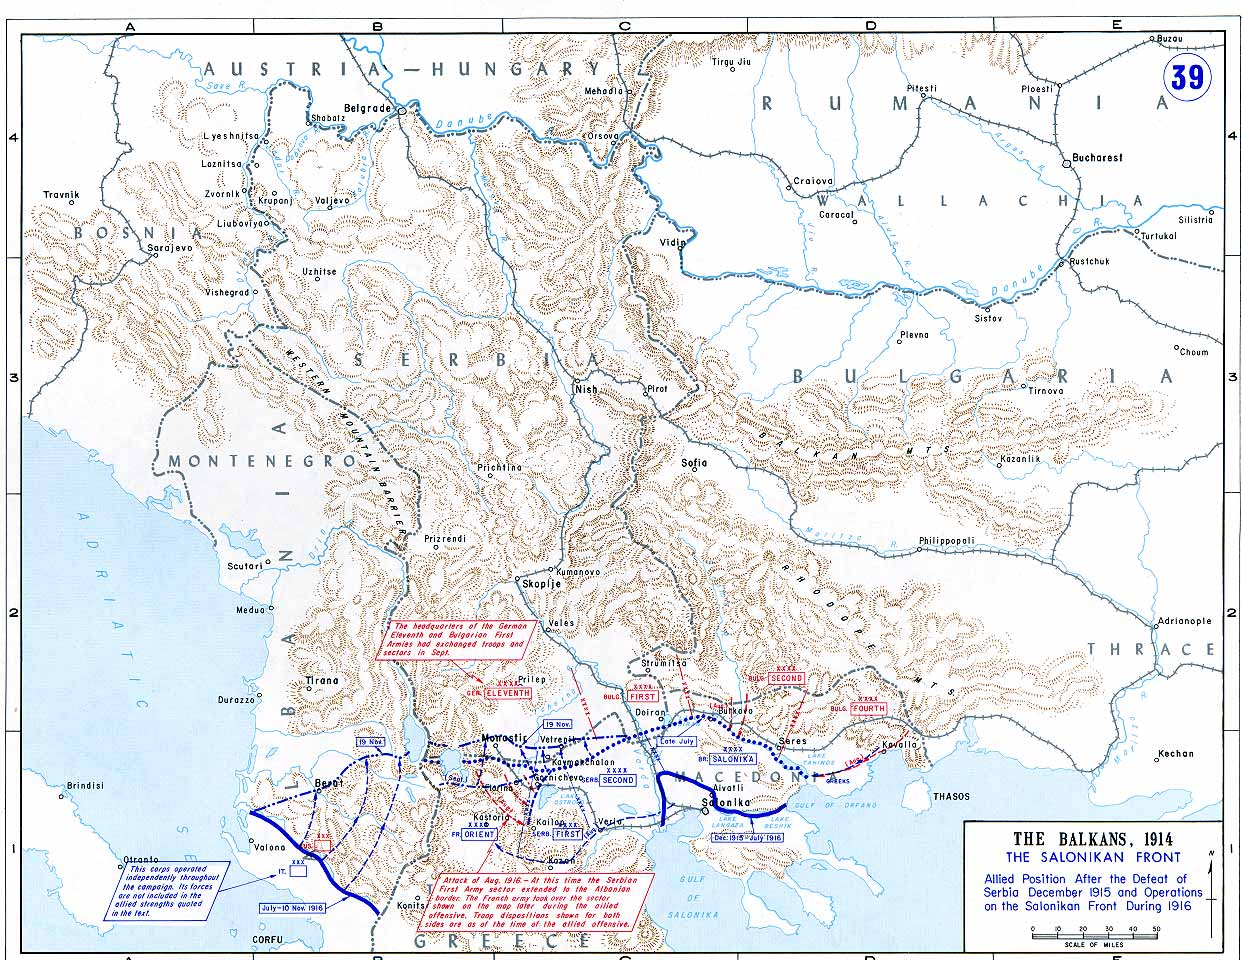 Maps Of The Great War Ww1 Trenches Diagram On Web Timeline British Trench 39 Salonikan Front 1915 1916